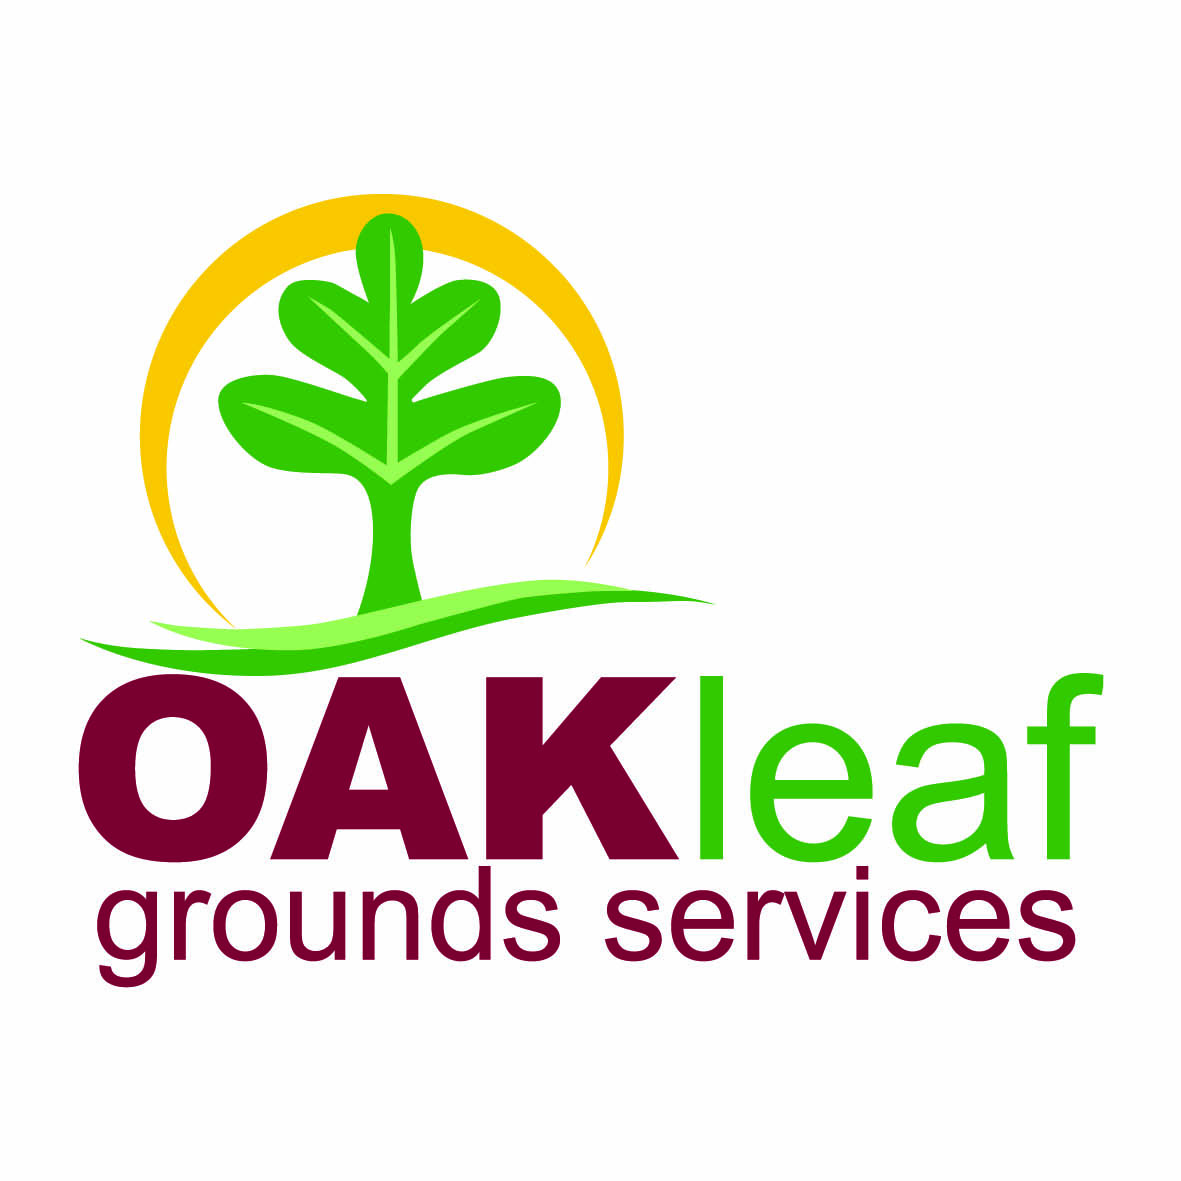 OAKLEAF GROUND SERVICES